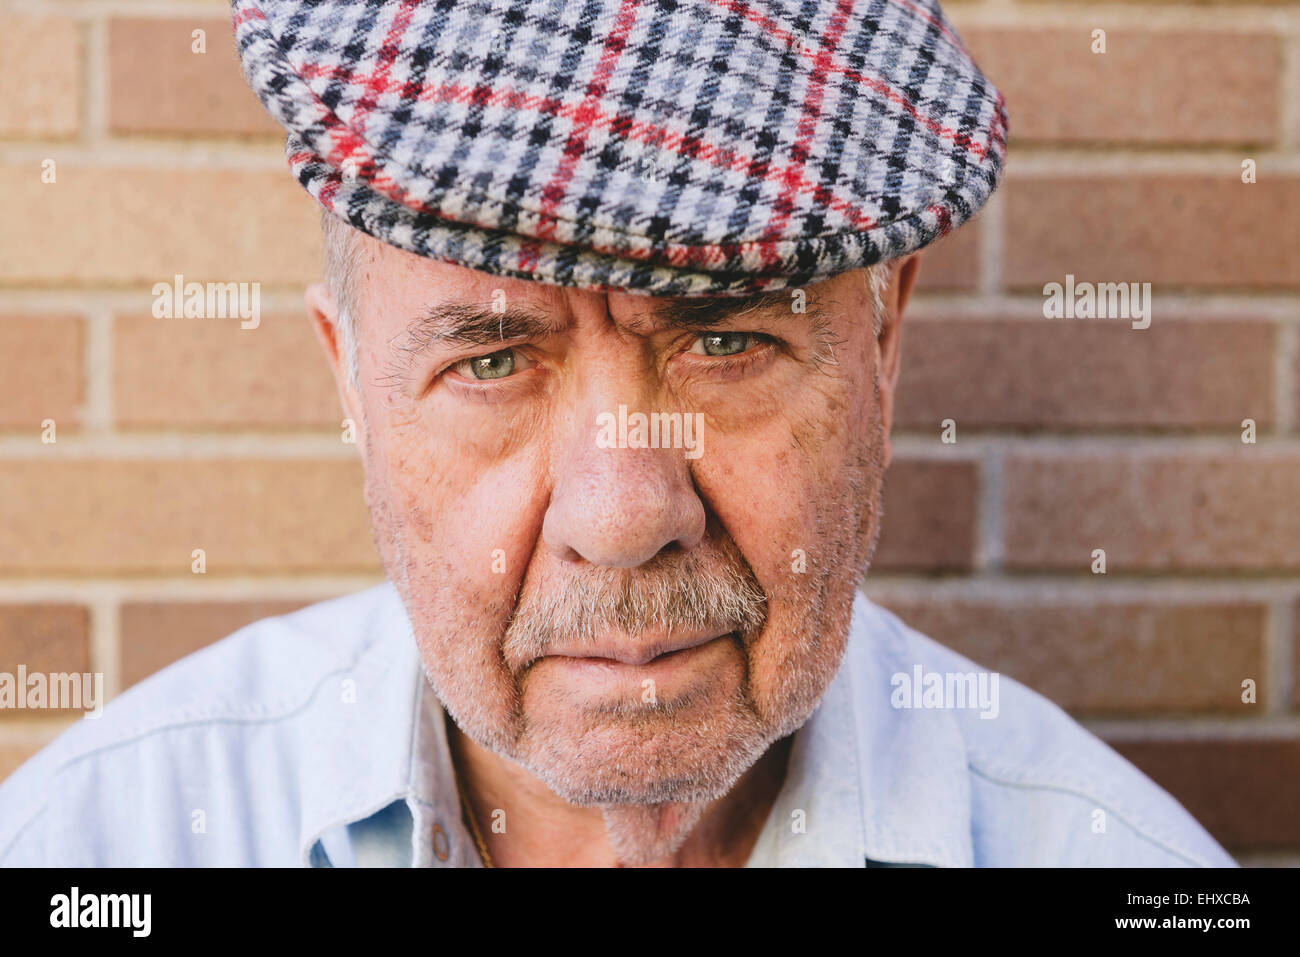 ad2d7c427fbb8 Man Beard Old Cap Stock Photos   Man Beard Old Cap Stock Images ...